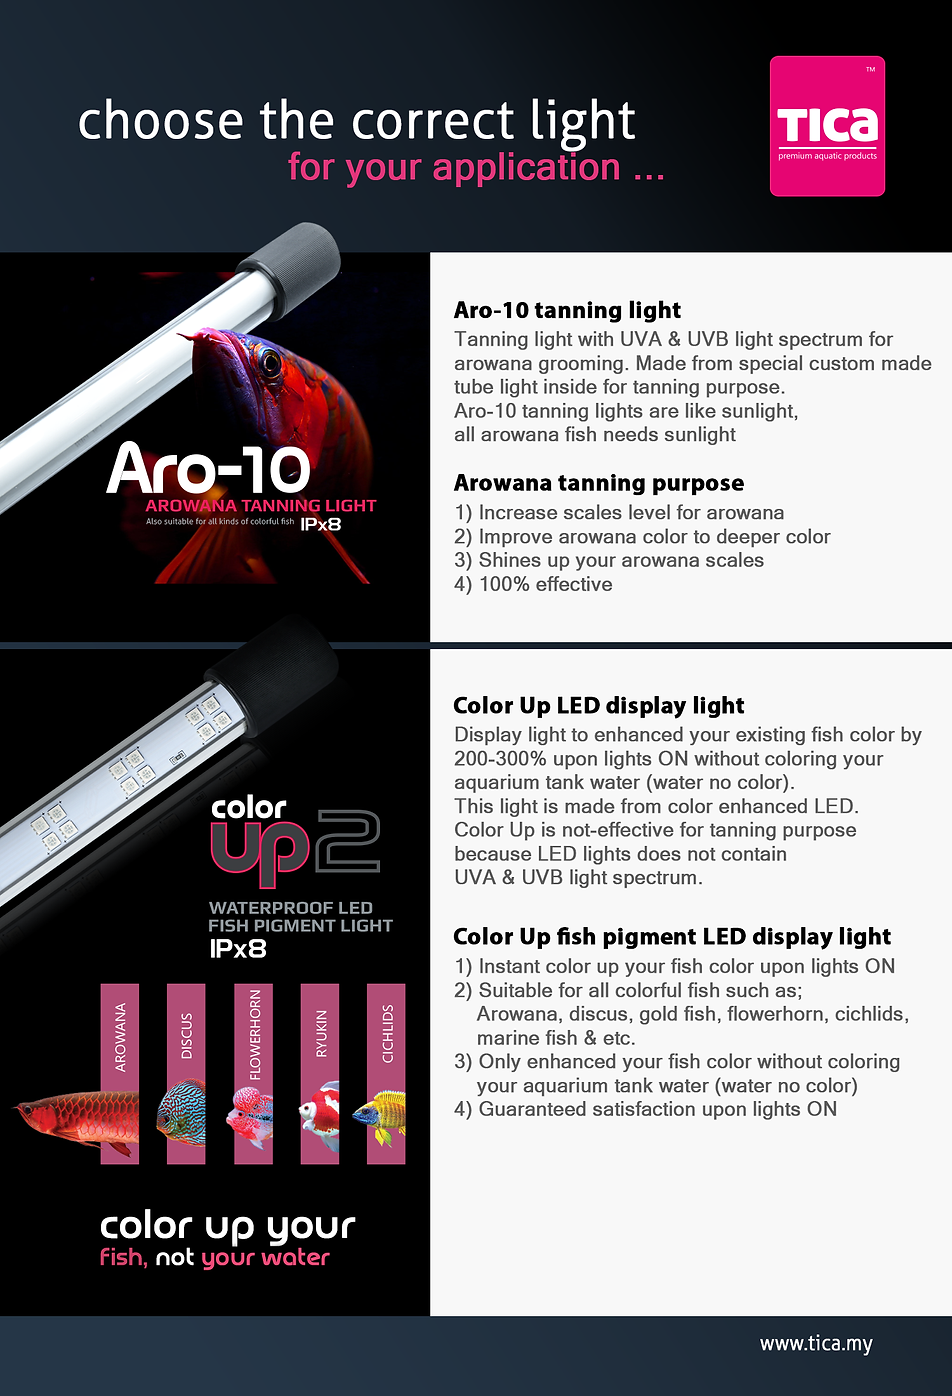 Color-Up-&-Aro-10-different-usage_2.png